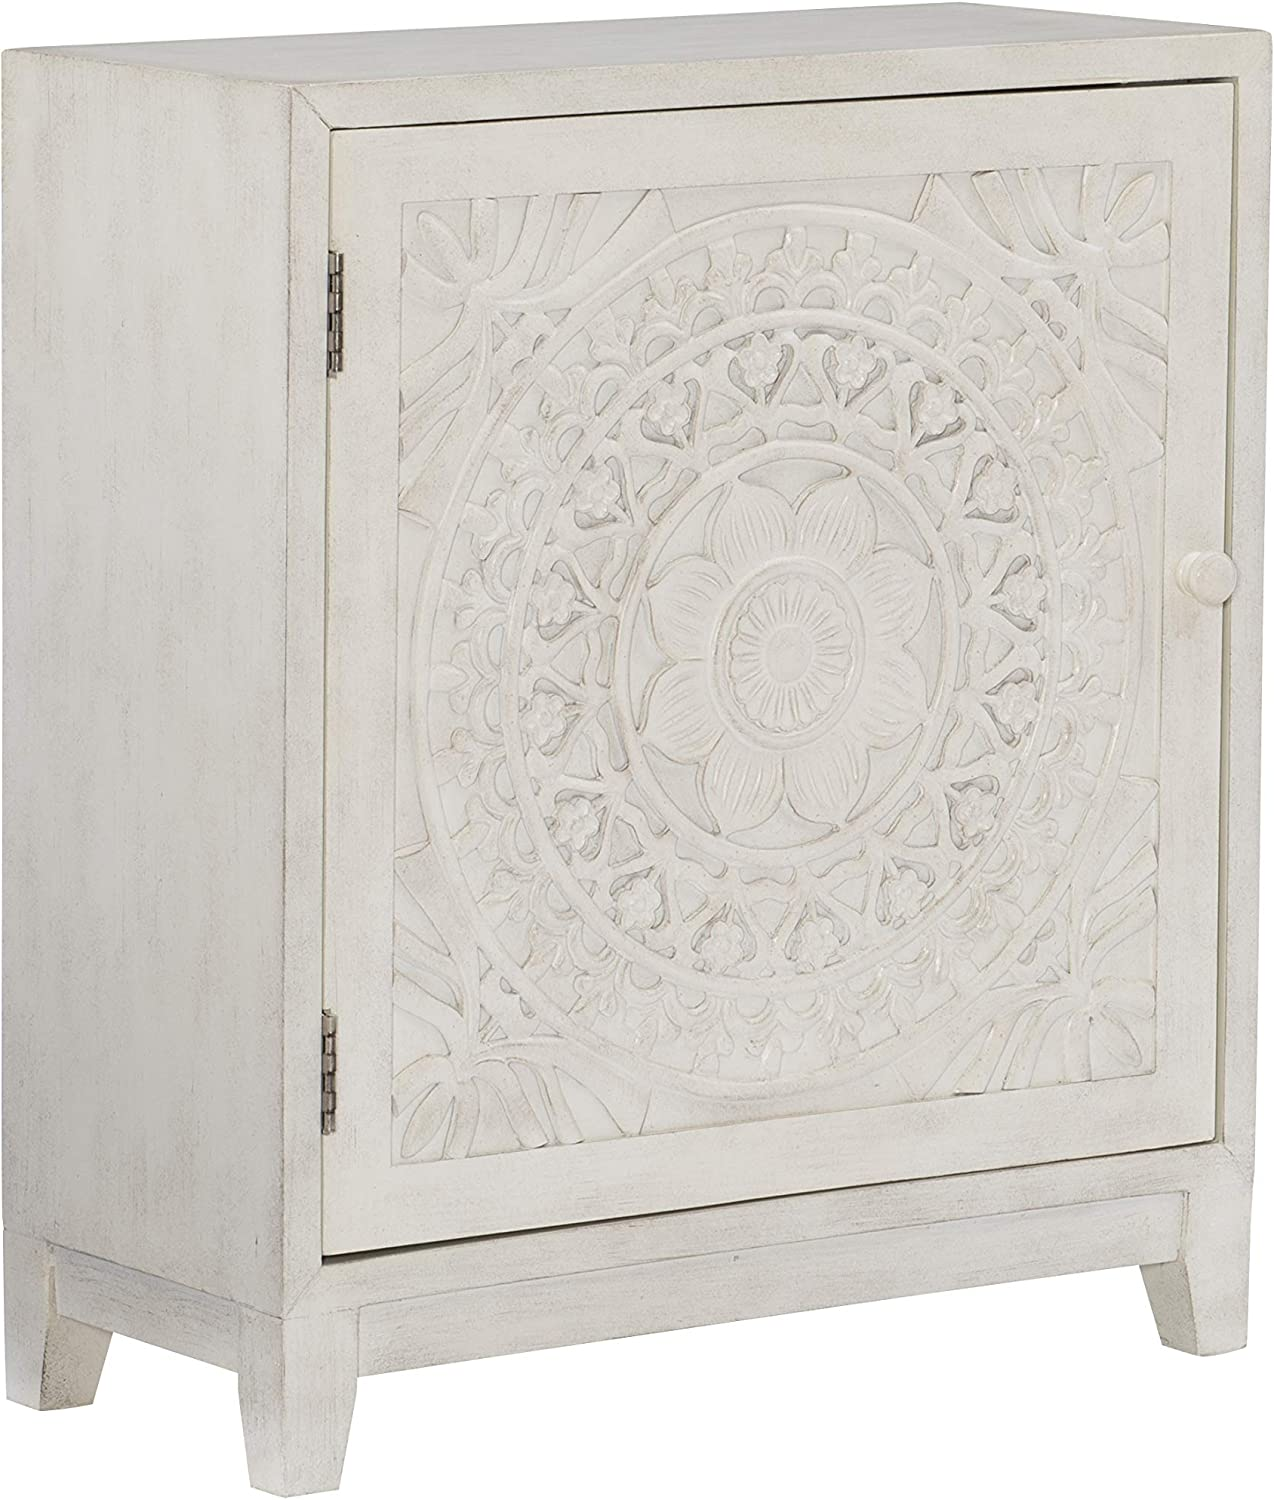 Powell Furniture Grace, Antique White Cabinet,